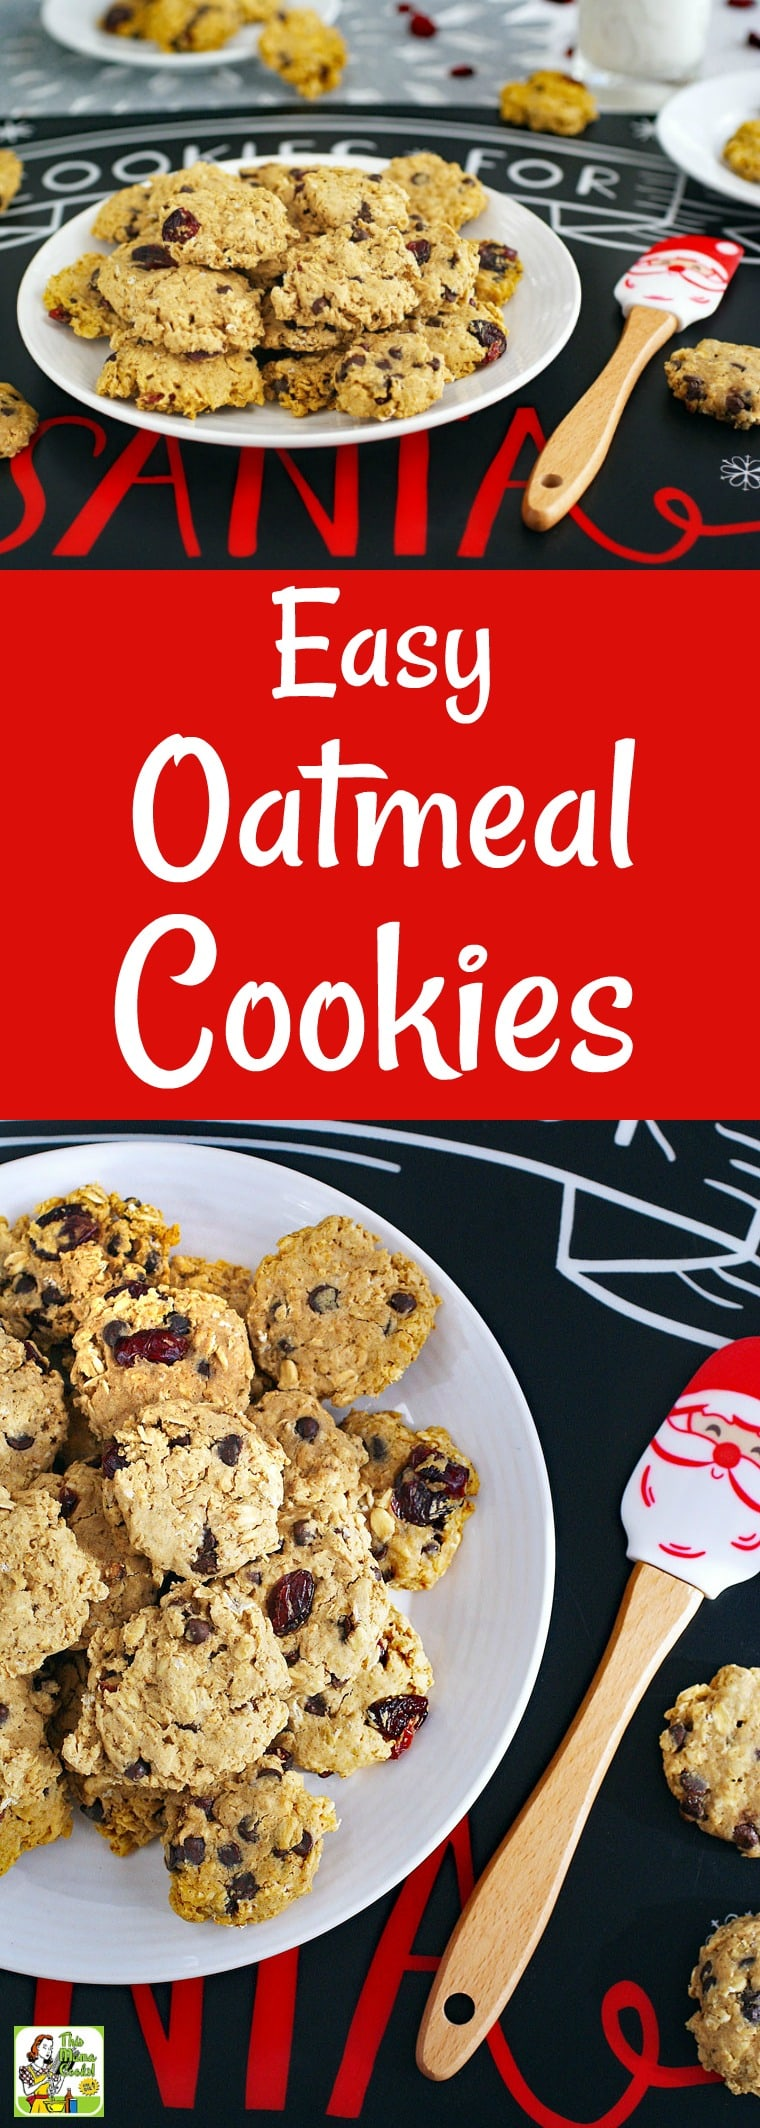 Easy Oatmeal Cookies for Cookie Swaps is the best oatmeal raisin cookie recipe for Christmas cookie exchanges and homemade holiday gifts. By adding ingredients like cranberries, chocolate chips or raisins, you can make a variety of gluten-free oatmeal cookies. These holiday cookie swap cookies are also dairy free. #glutenfree #dairyfree #cookies #homemadegifts #cookieswap #cookieexchange #baking #Christmas #recipe #easy #recipeoftheday #healthyrecipes #easyrecipes